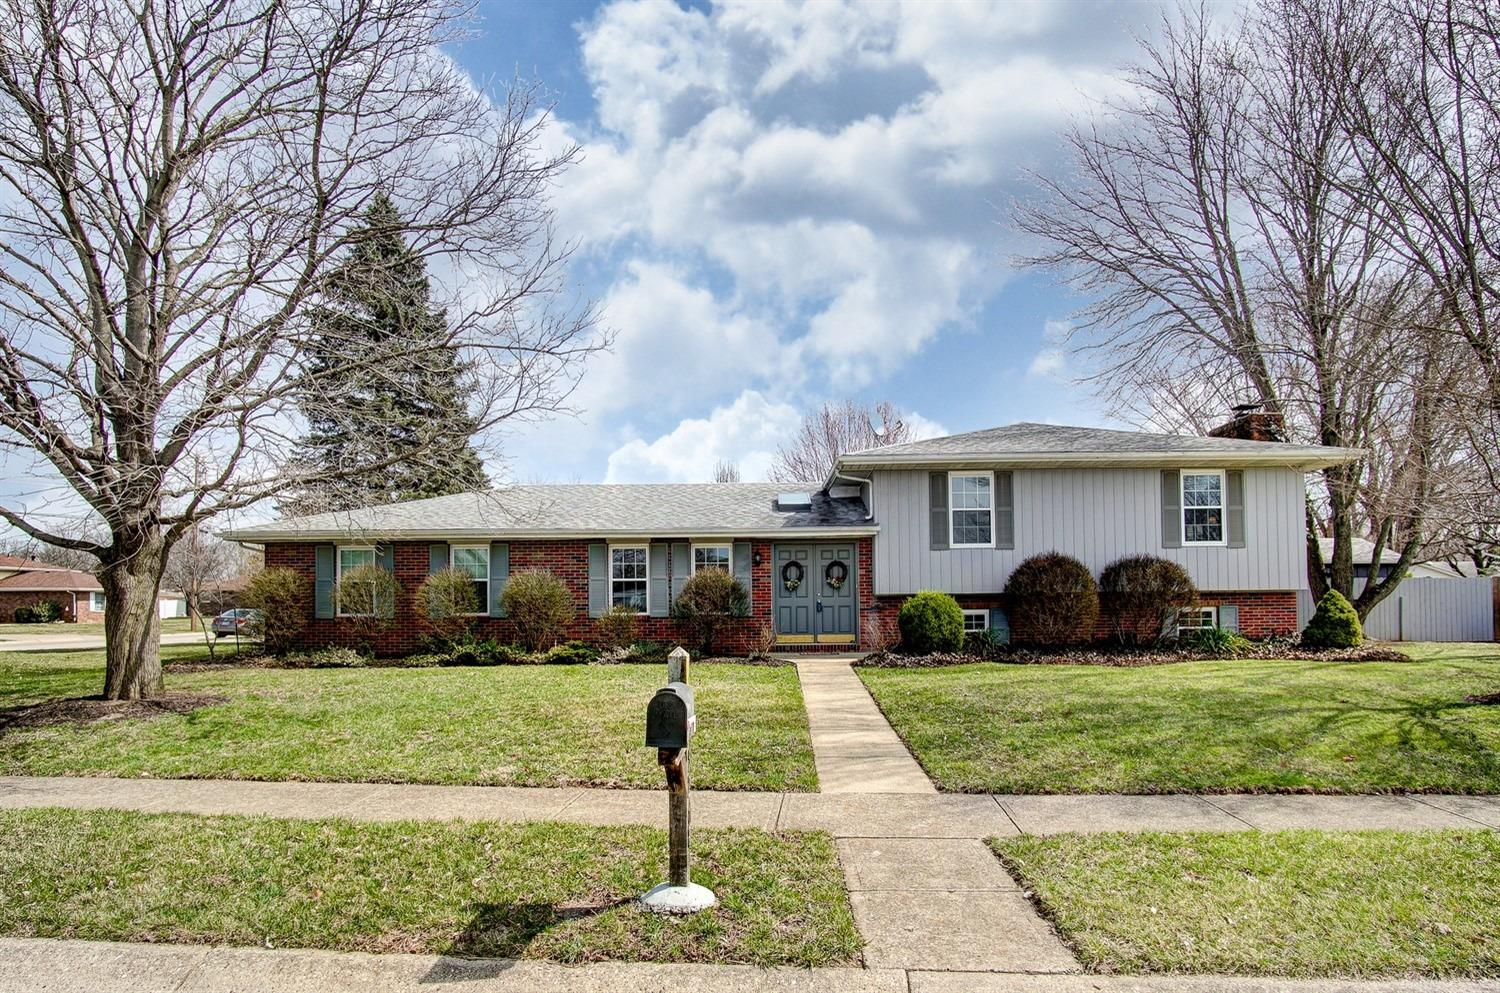 5268 Dellbrook Dr Fairfield, OH